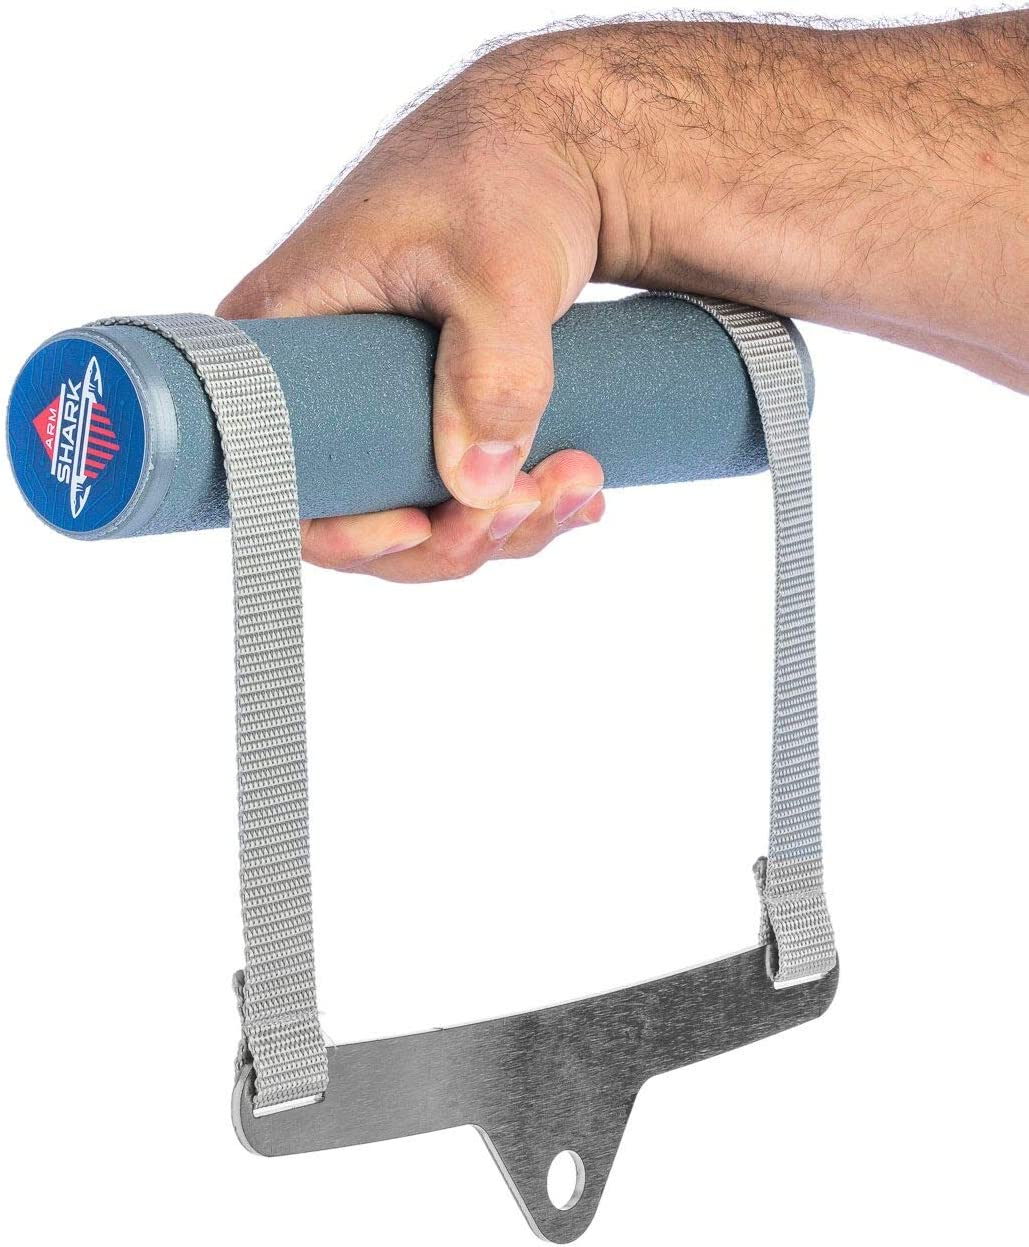 Arm Shark Wrist Wrench Armwrestling Handle – Fat Grip – Strong Grip